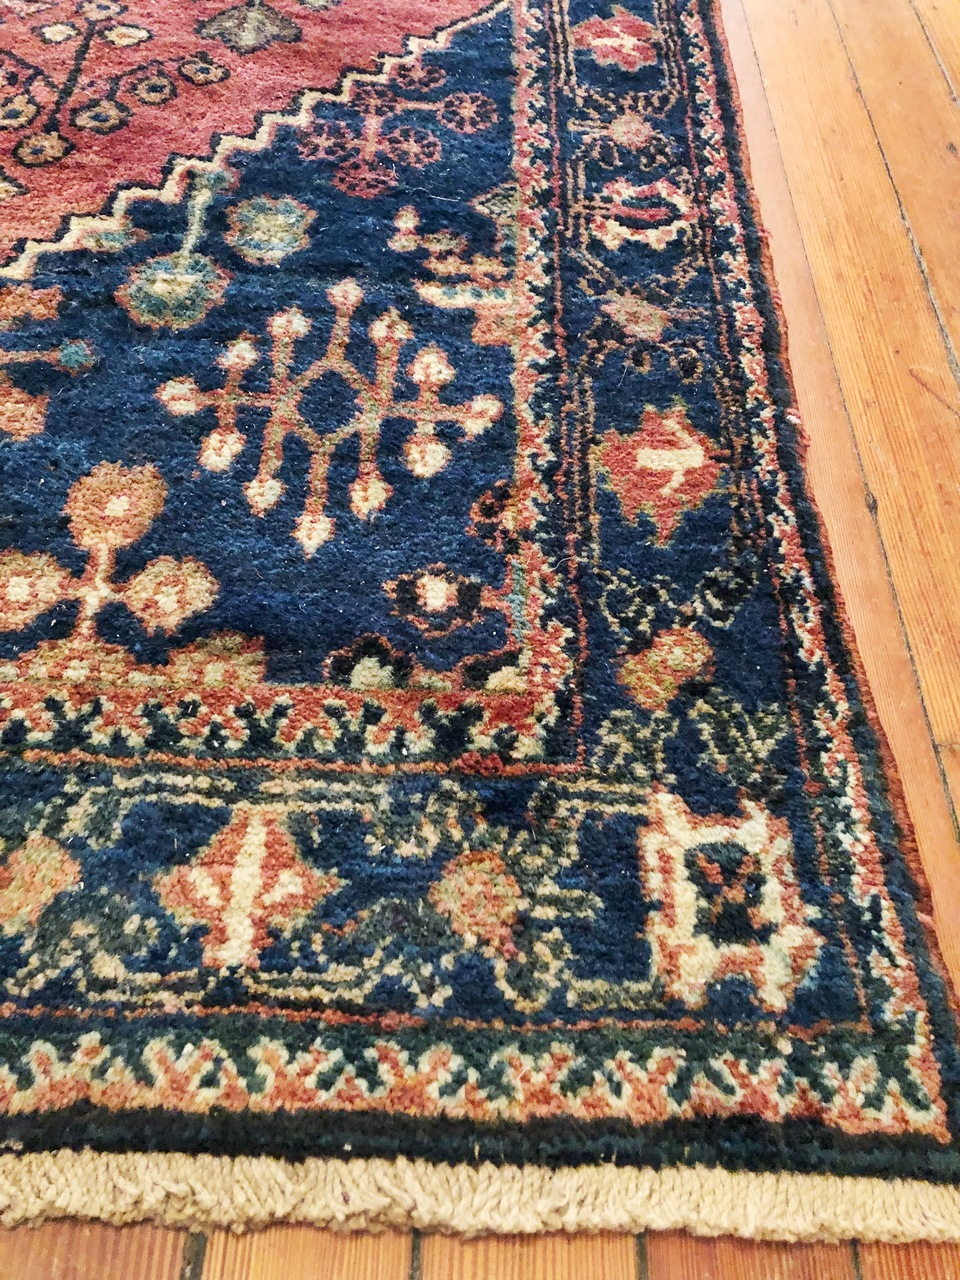 Antique Persian Rug No. 4